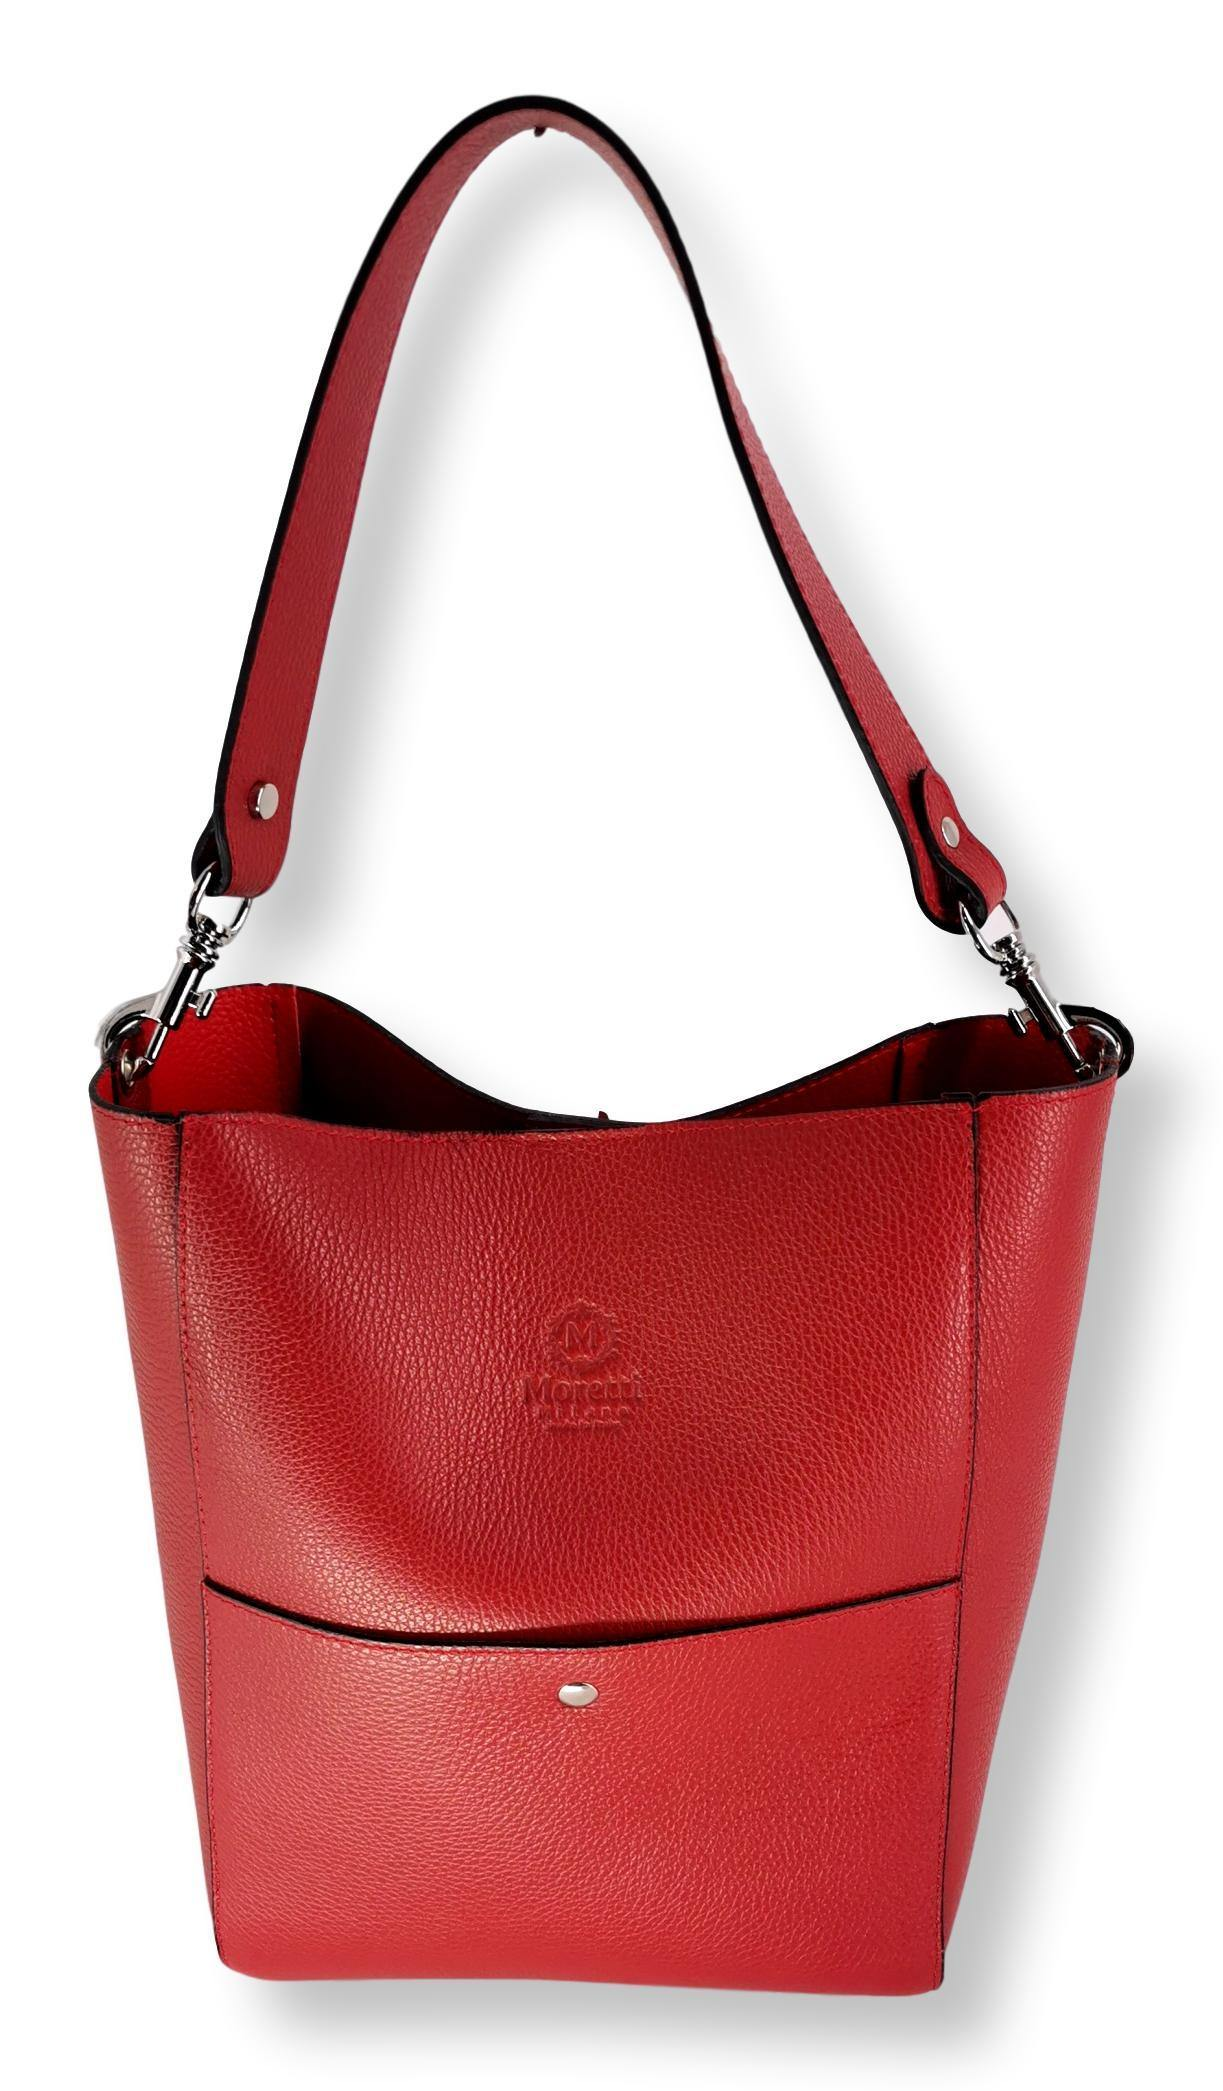 Moretti 14359 - Leather - Accesories - Red | STAMPE PELS